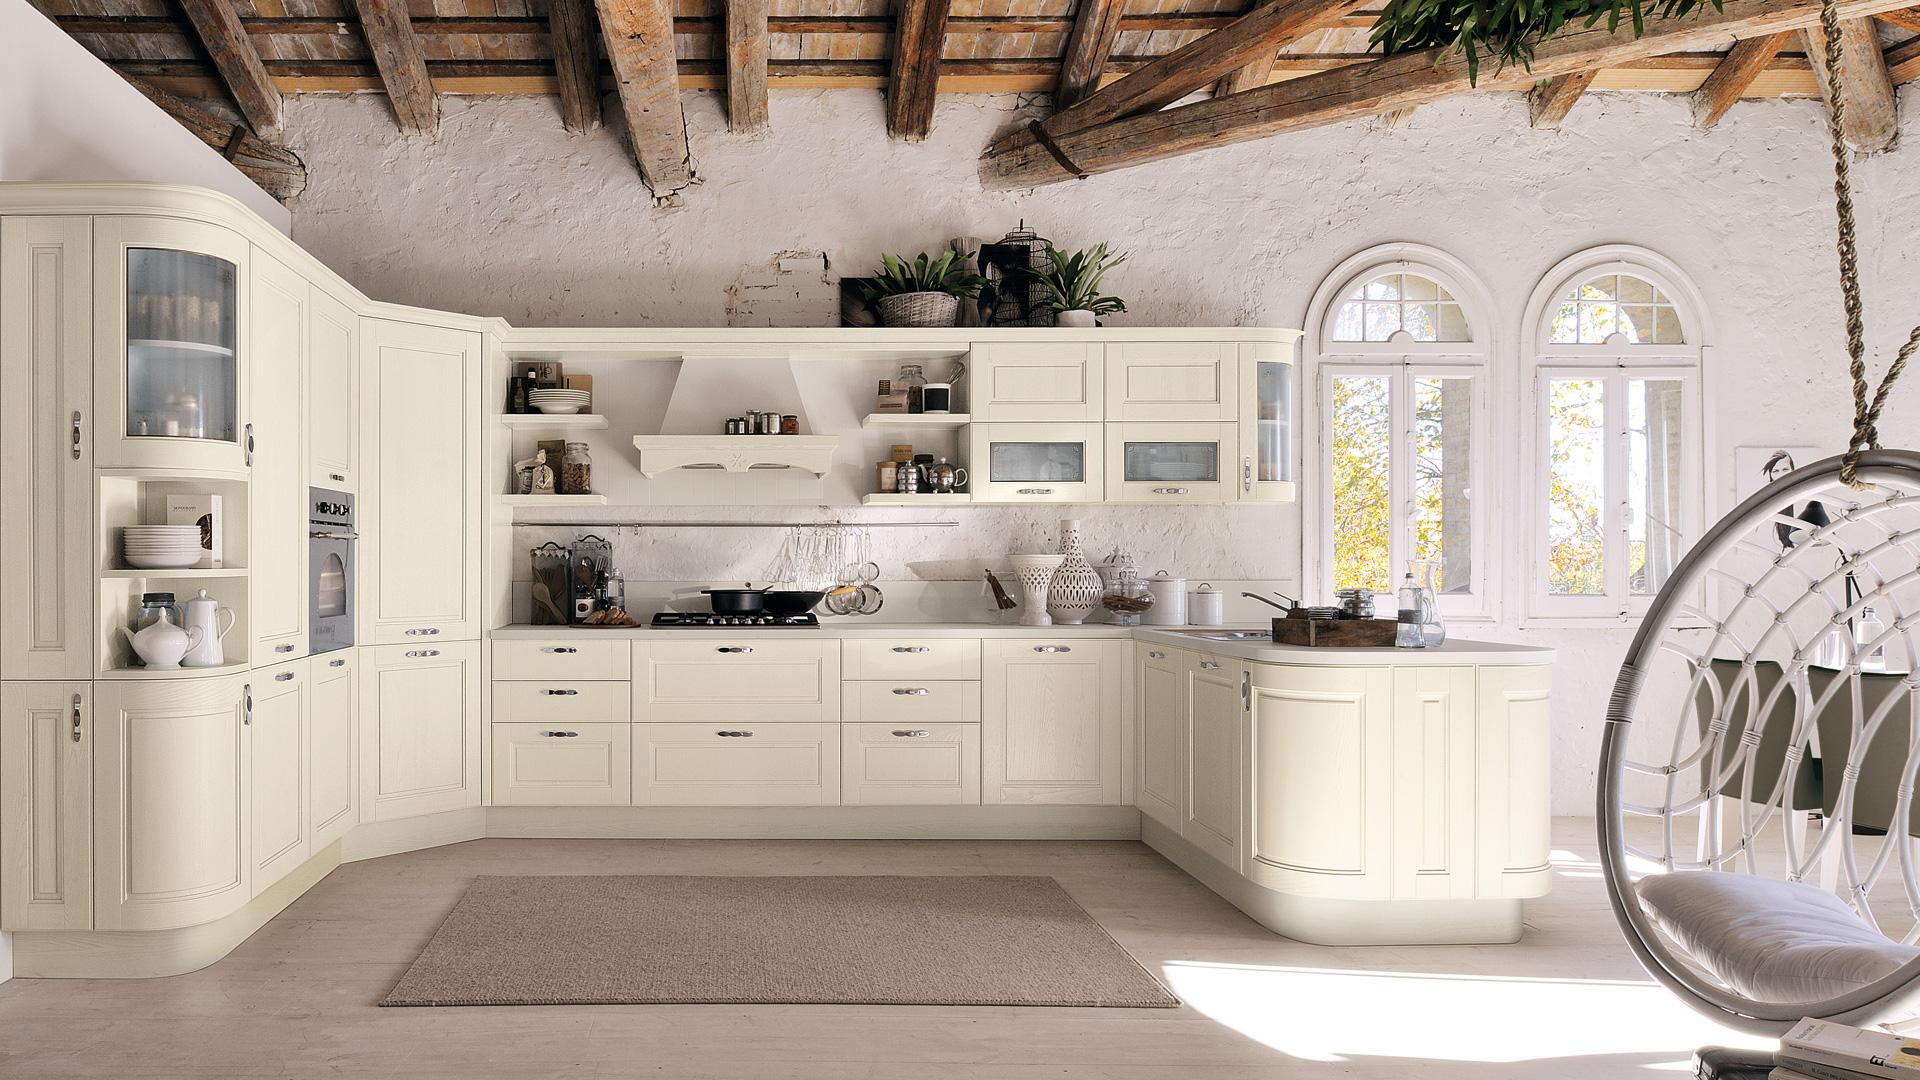 Cucine in stile provenzale le idee country chic per chi for Cucine stile country